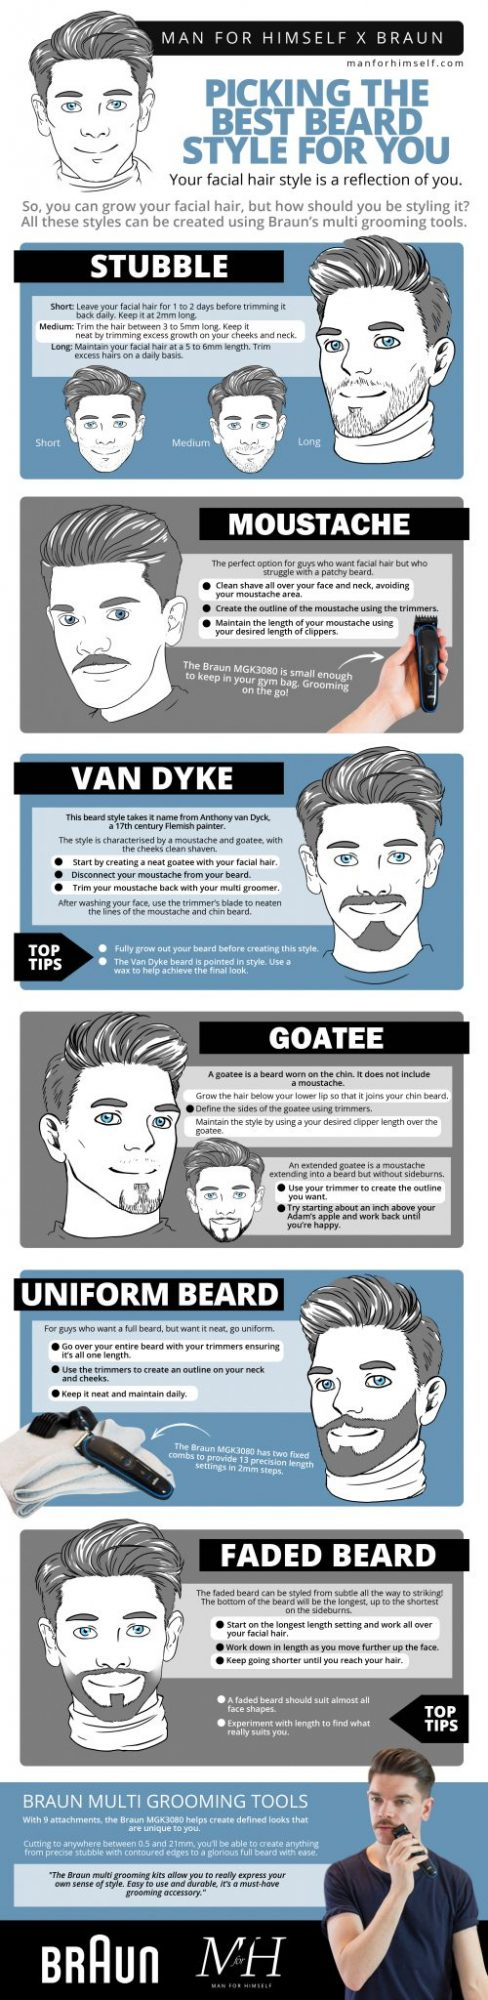 best beard styles infographic Man For Himself